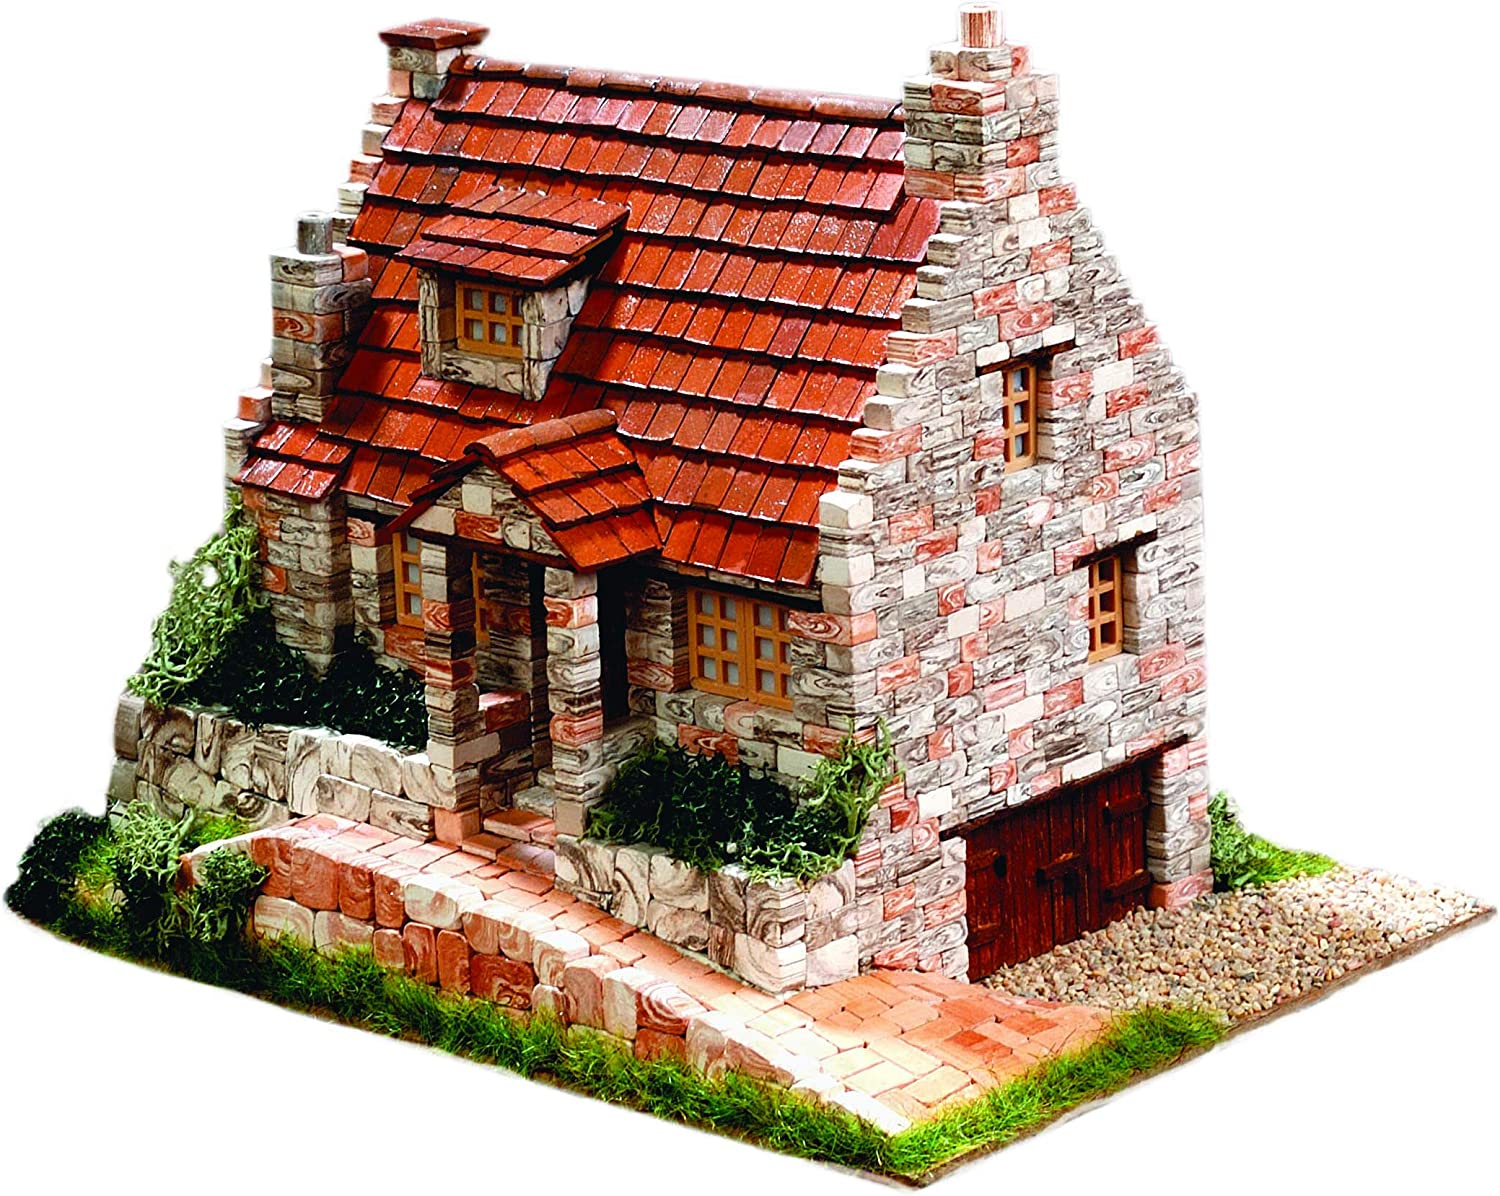 CUIT Ceramic Max 50% OFF Building Construction Kit Max 59% OFF House 1:87 Old Cottage